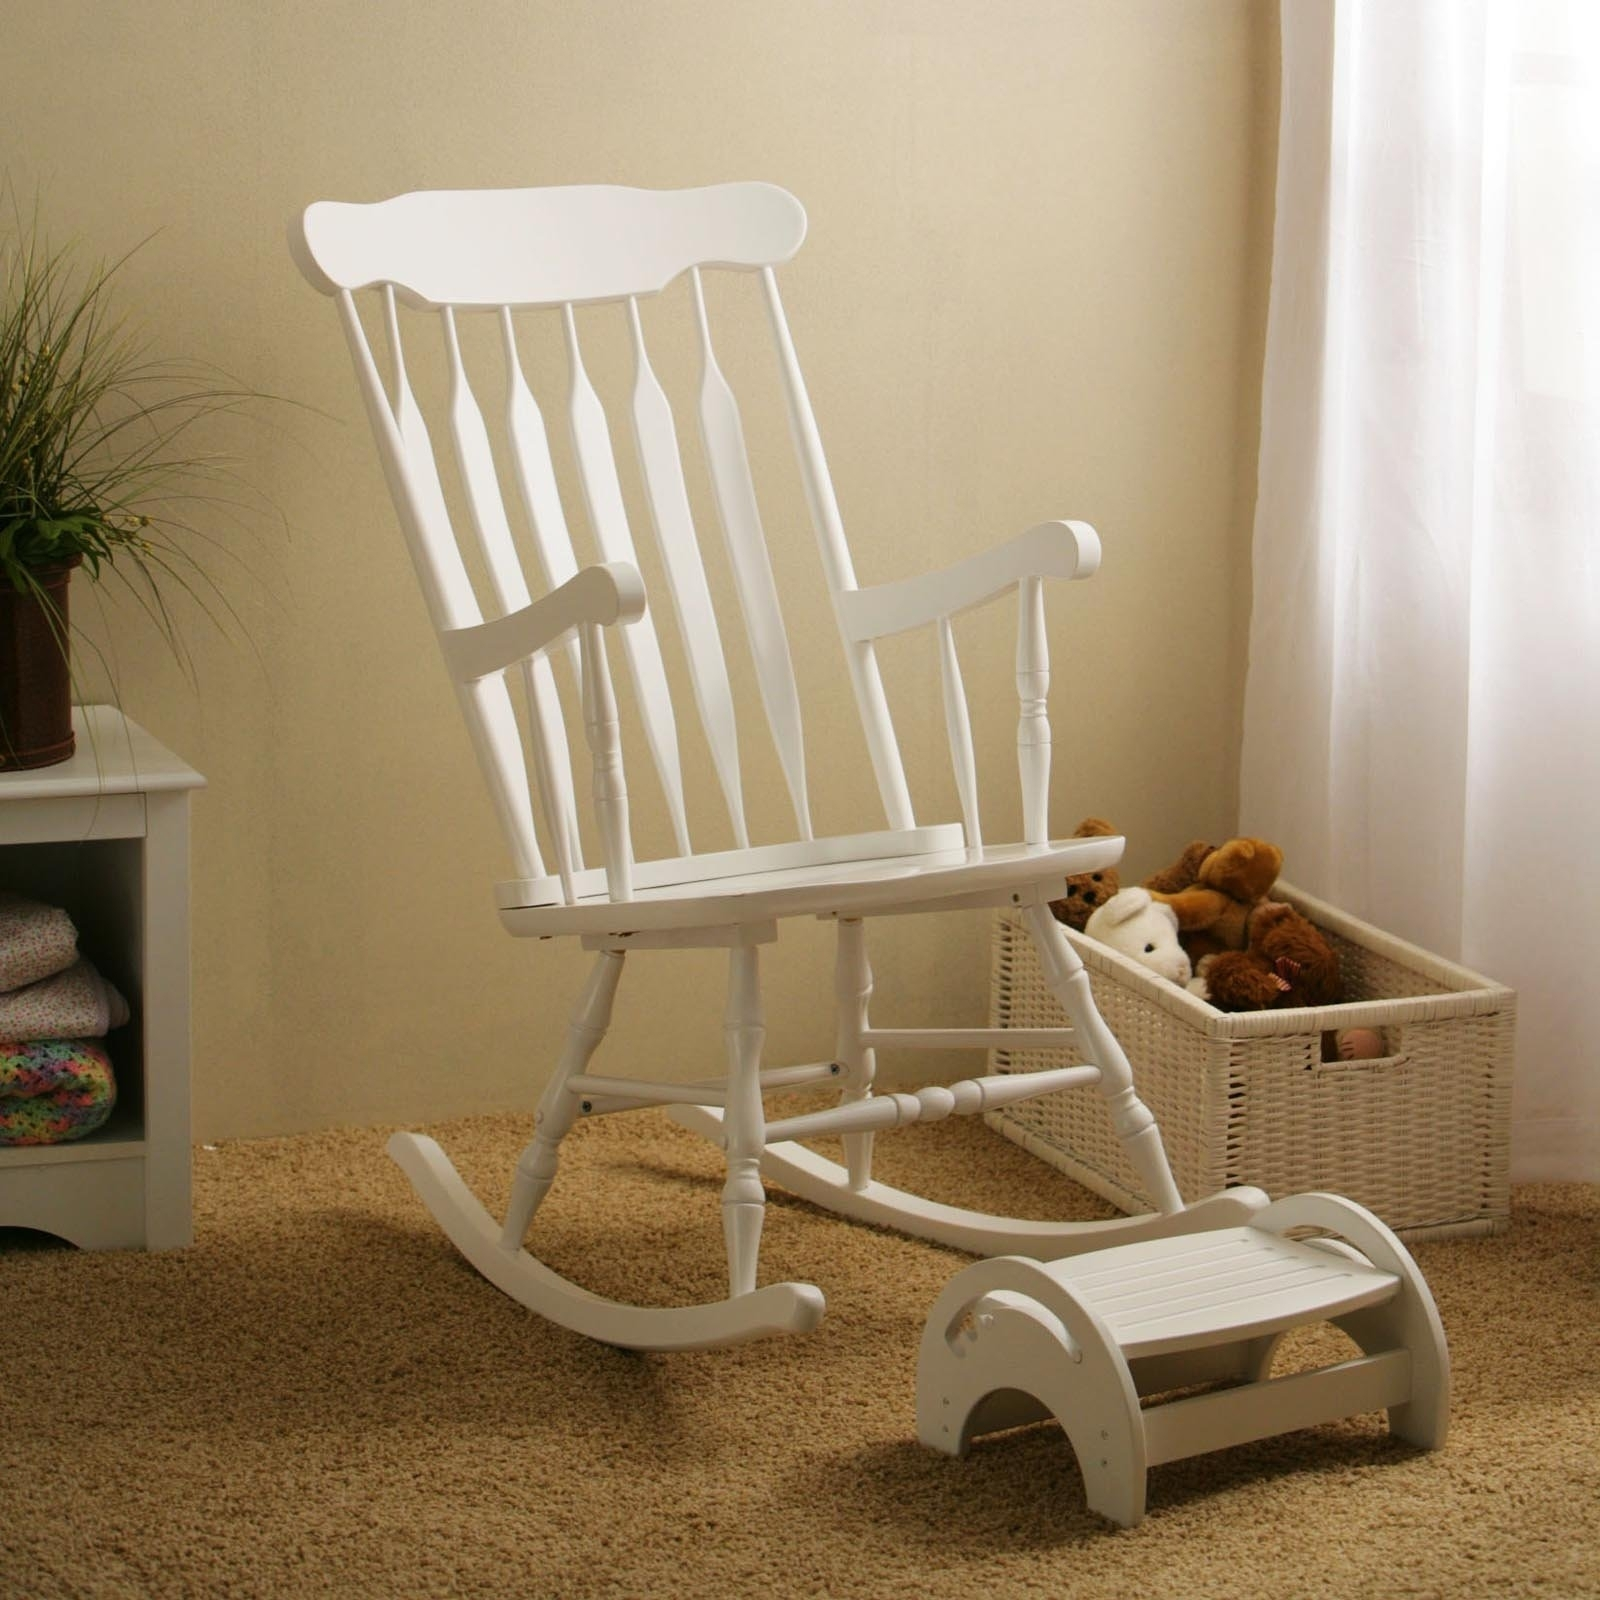 Baby Nursery: Amazing Baby Nursery Rocking Chair Ideas Nursing Regarding Rocking Chairs For Nursing (View 1 of 15)